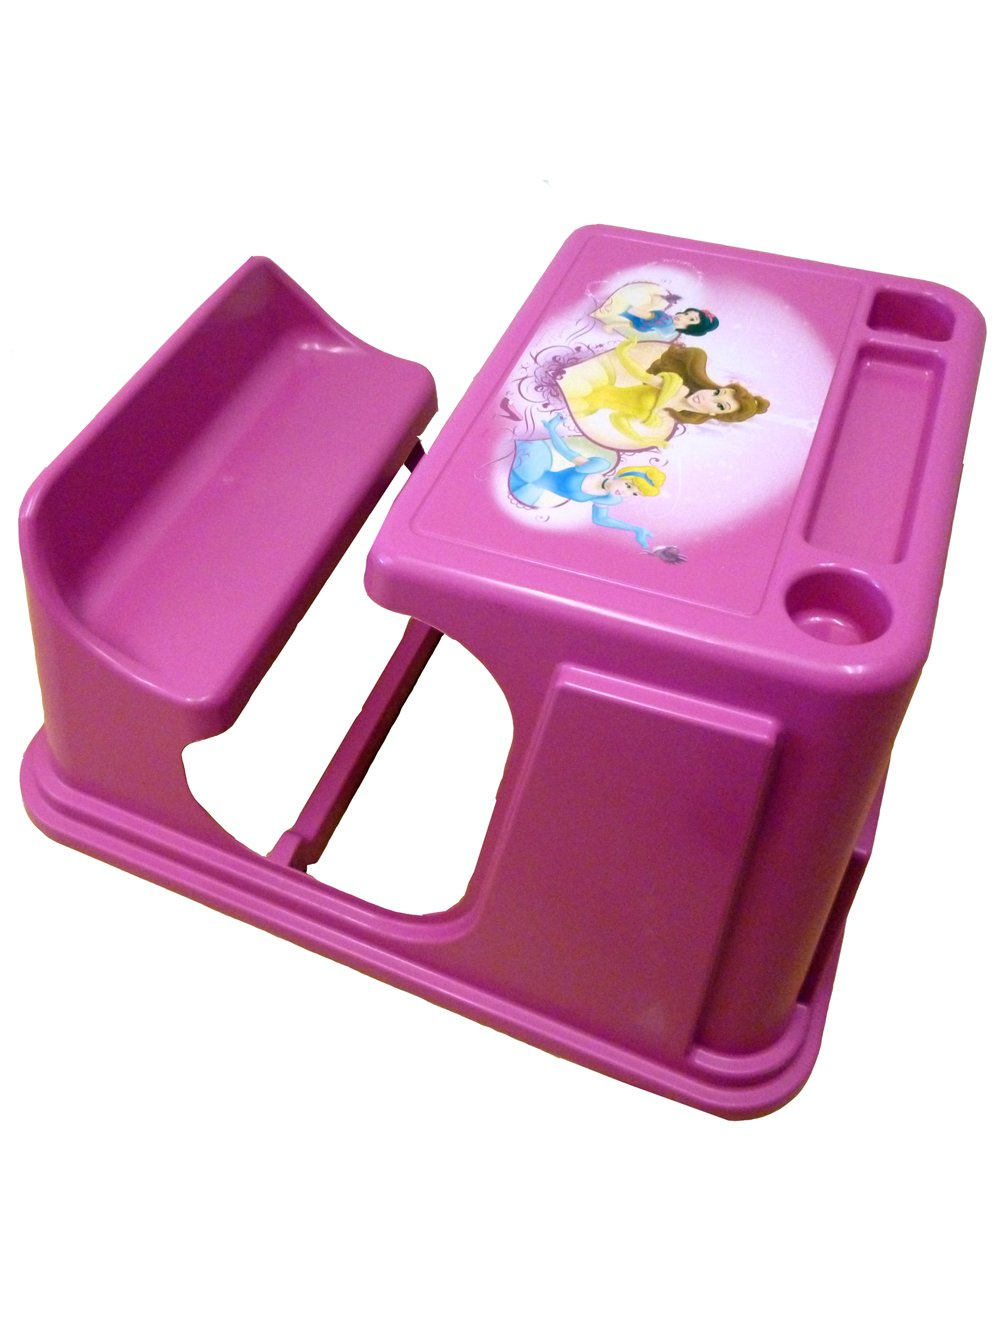 sc 1 st  Amazon UK & Disney Princess Plastic Desk and Stool: Amazon.co.uk: Toys u0026 Games islam-shia.org